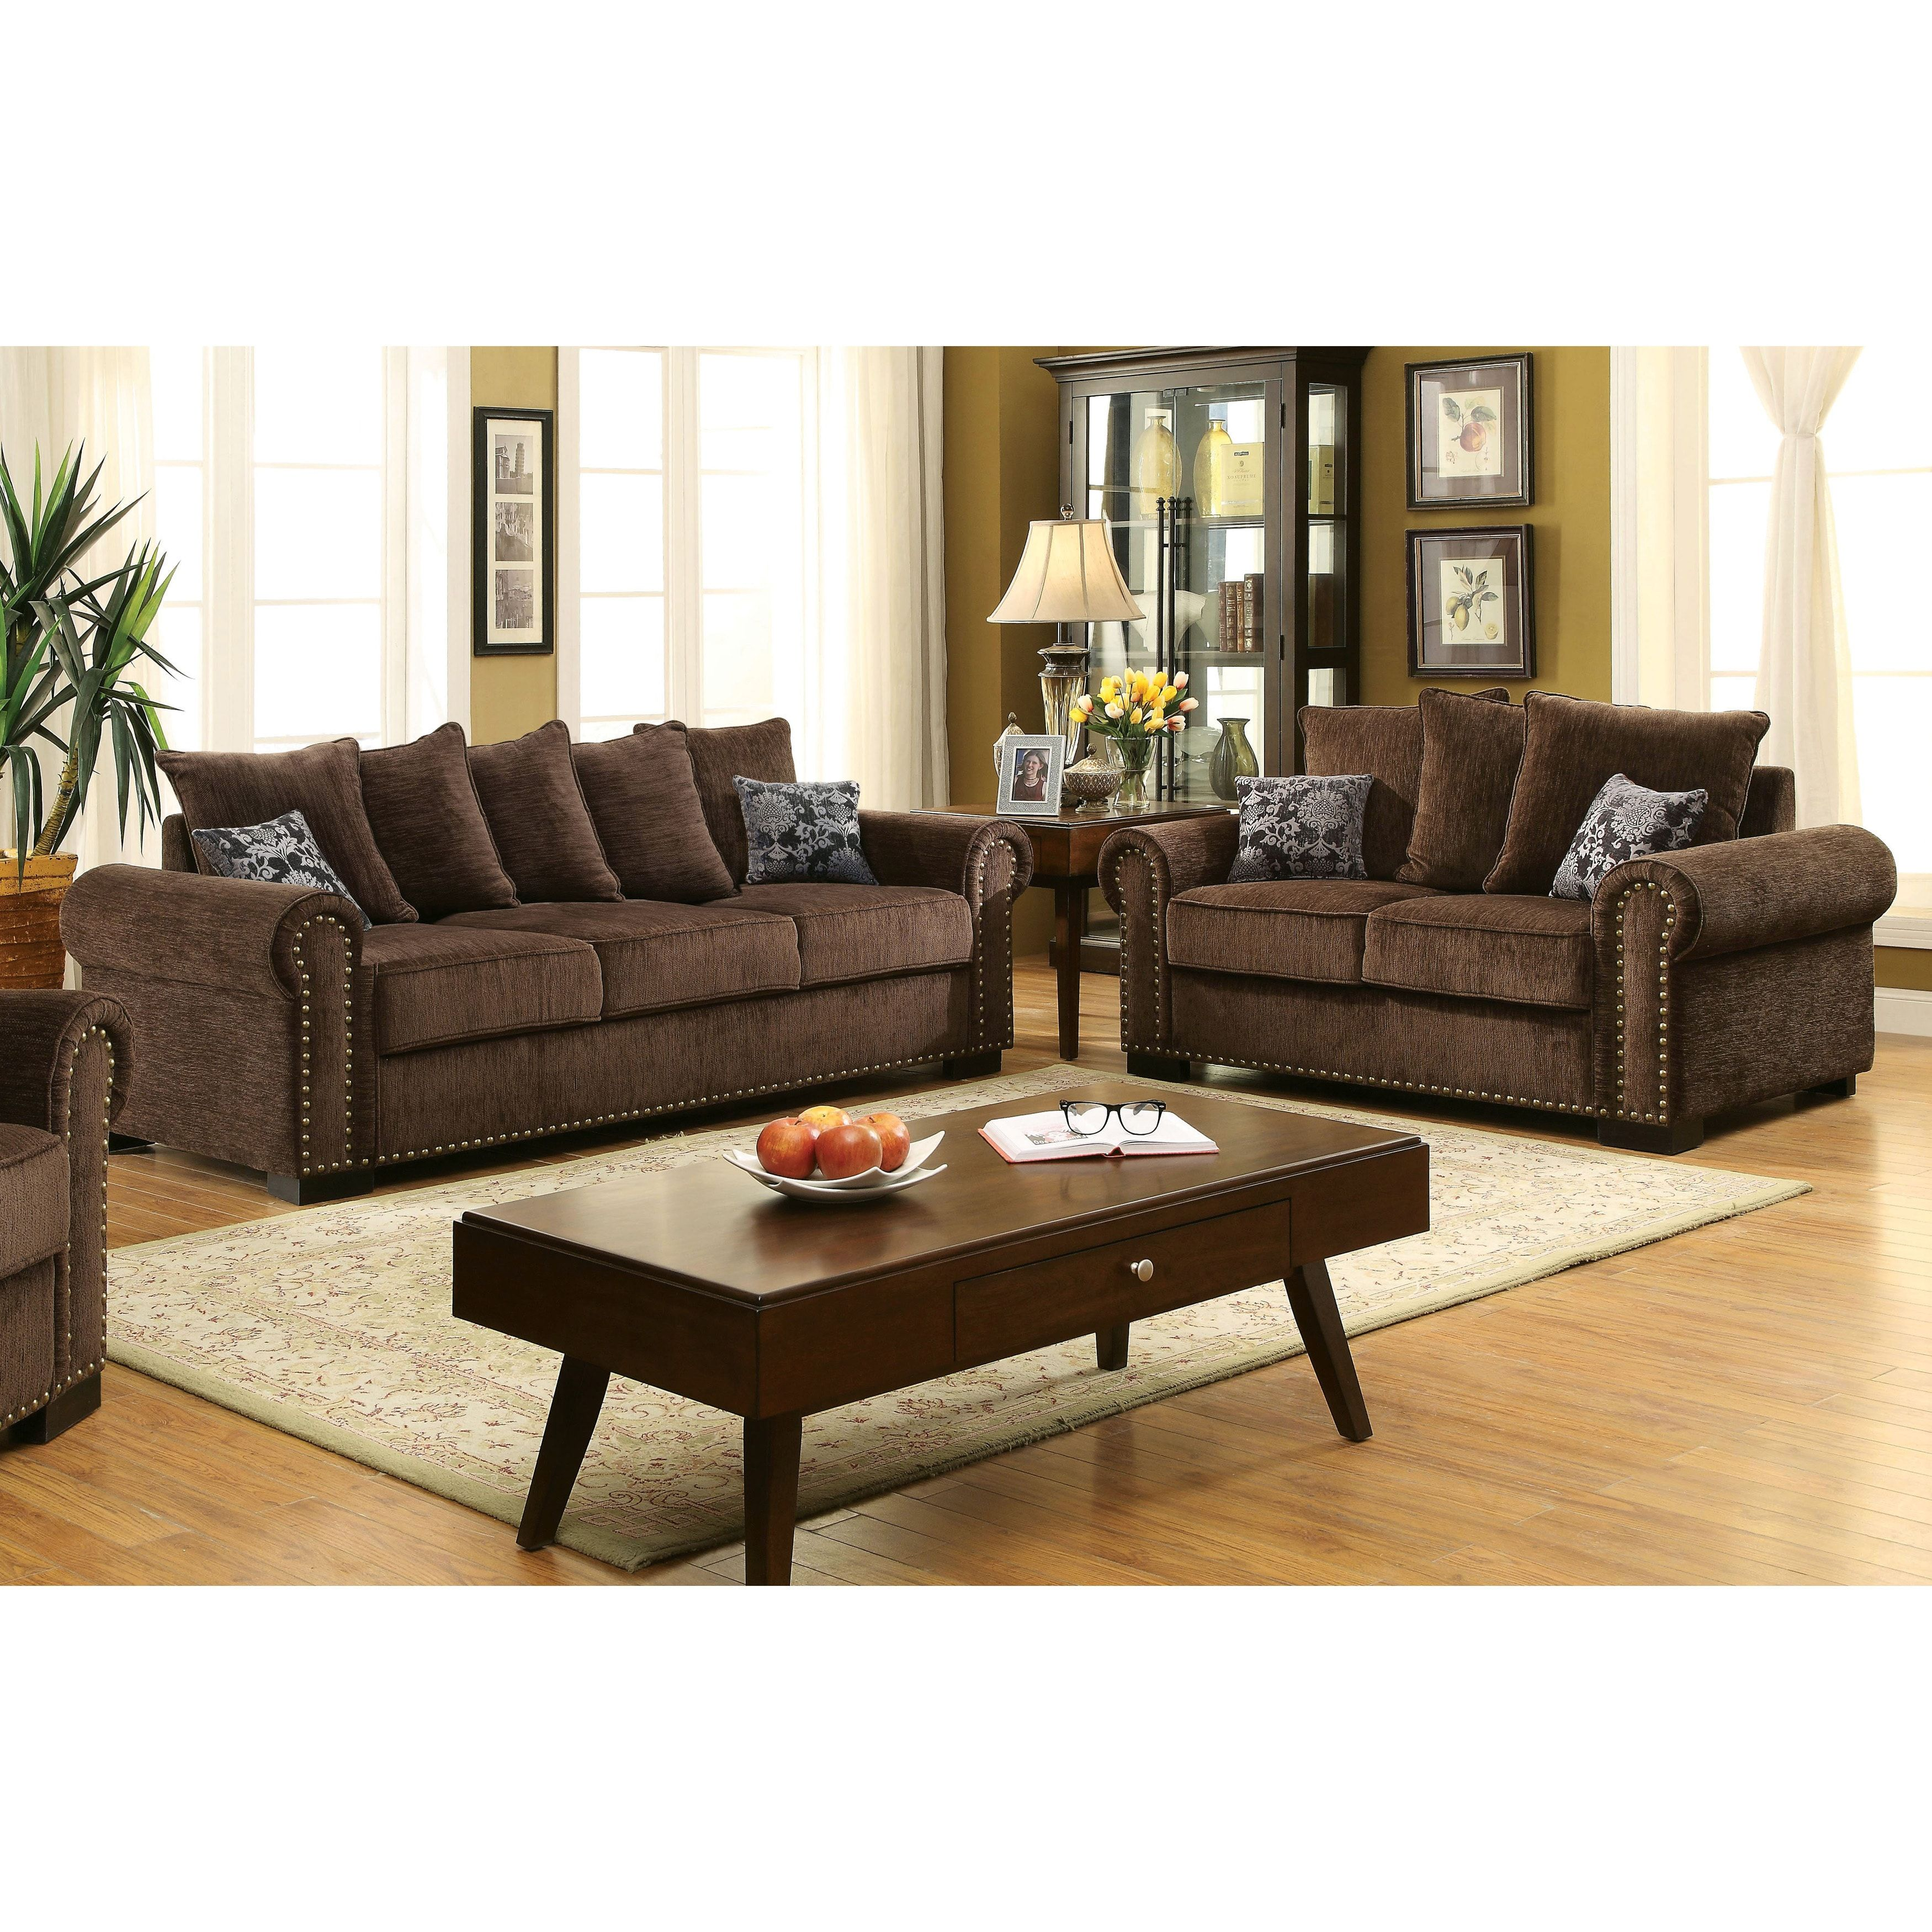 Furniture Of America Pana Transitional Brown Chenille 3 Piece Sofa